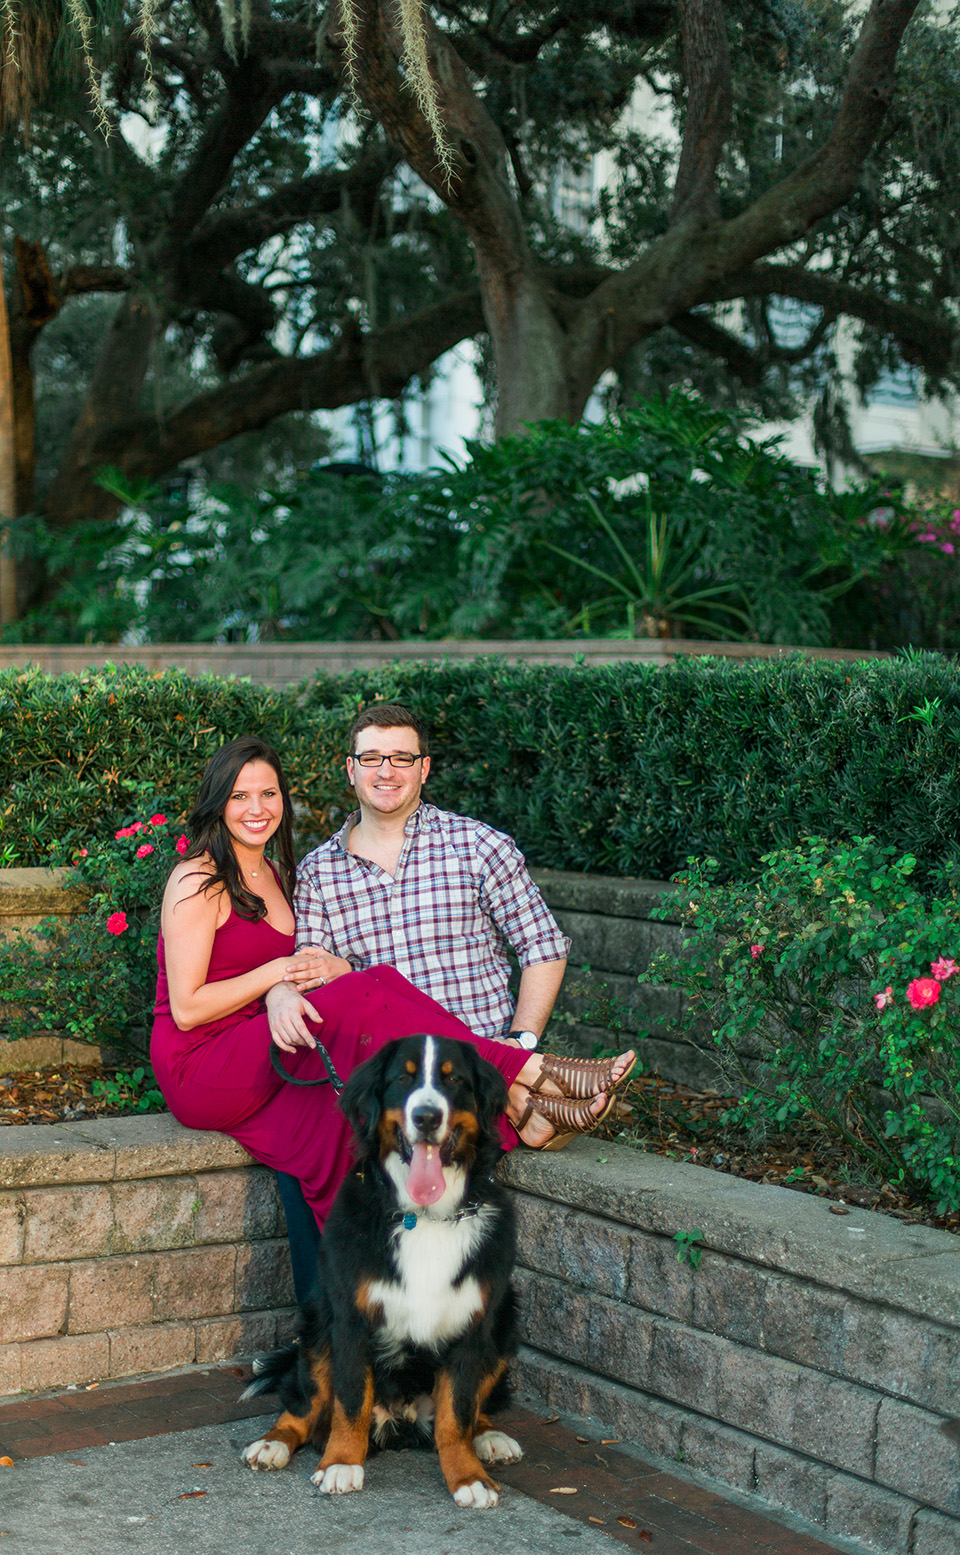 Image of an engaged couple with their Bernese Mountain Dog in downtown Orlando, Florida.  They are all sitting together and smiling with greenery in the background.